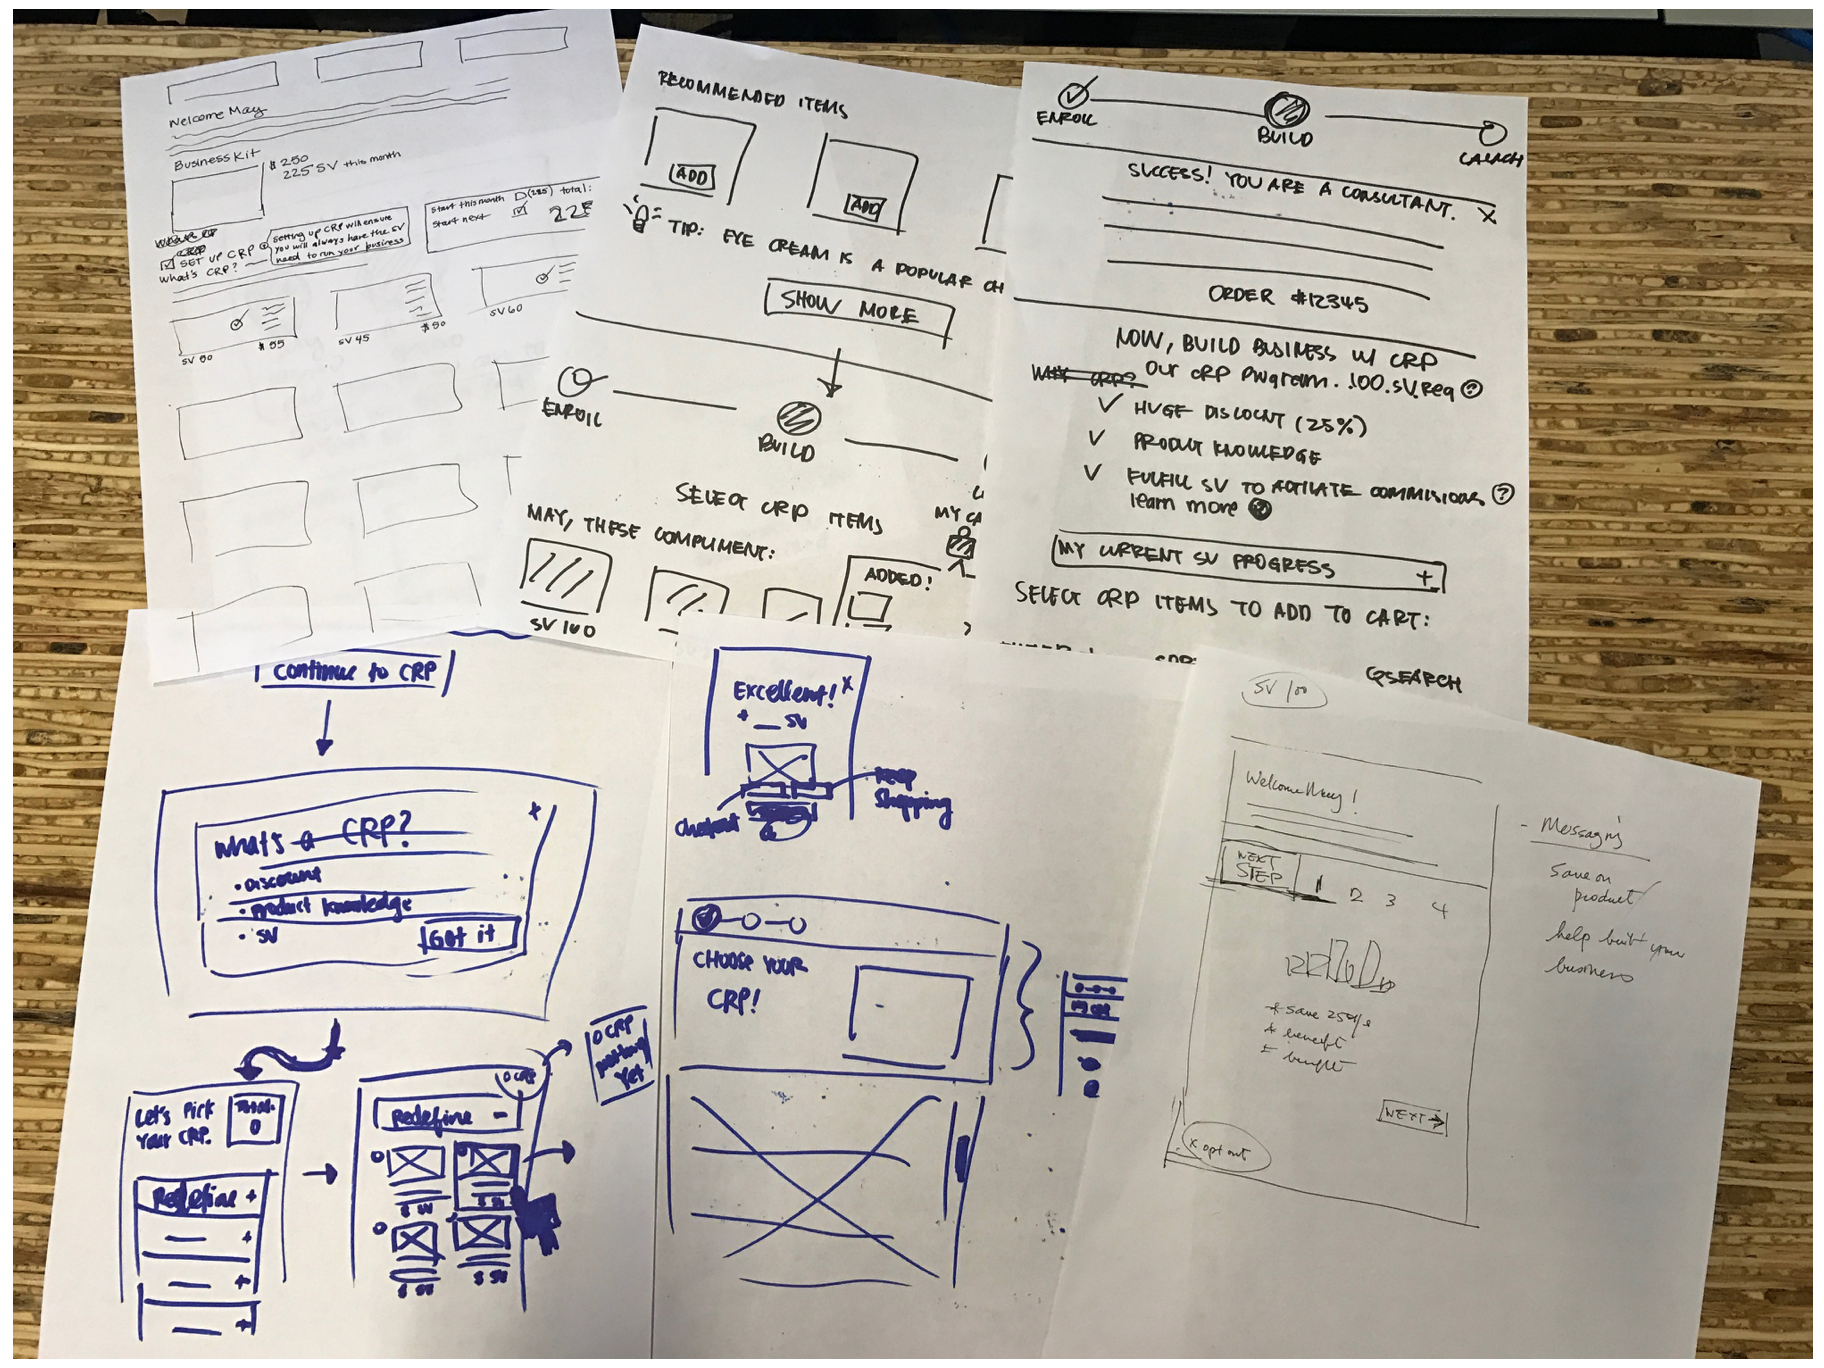 Sketches from our design studio